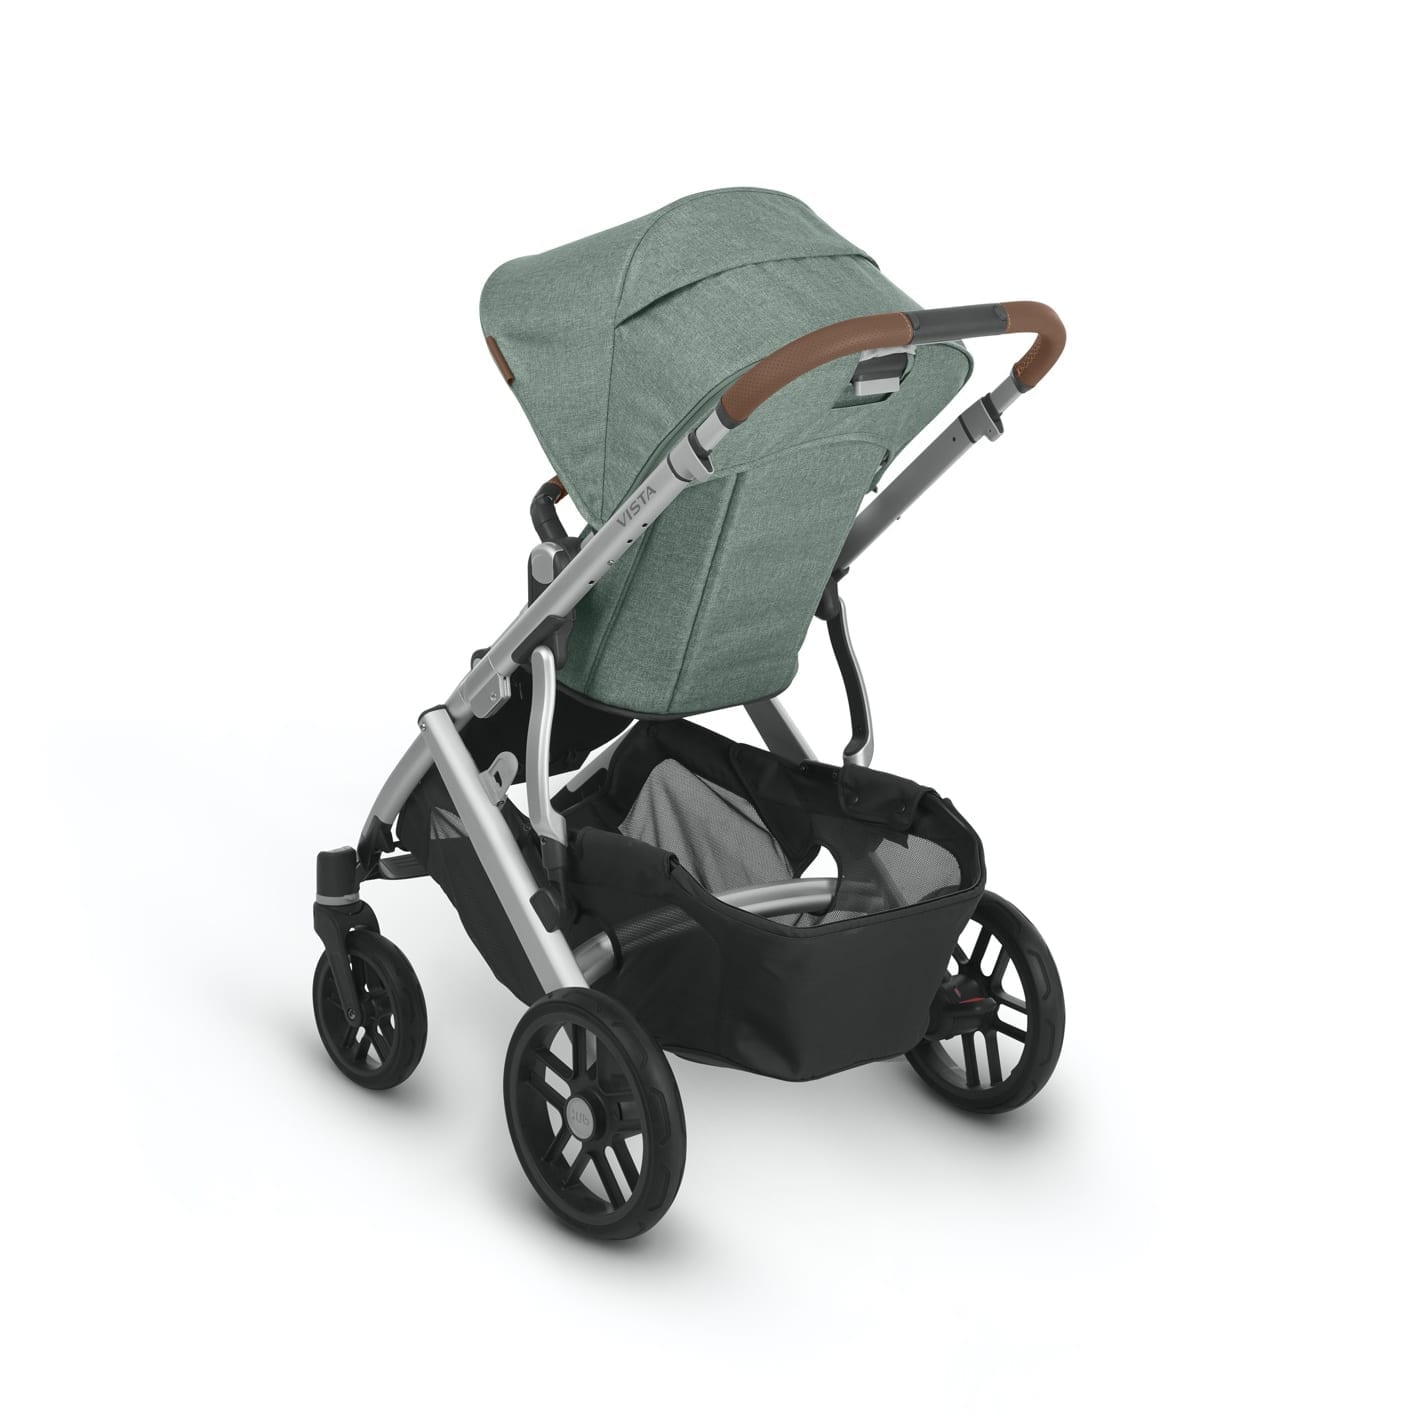 UPPABaby VISTA 2 Stroller & Carry Cot  – EMMETT product image